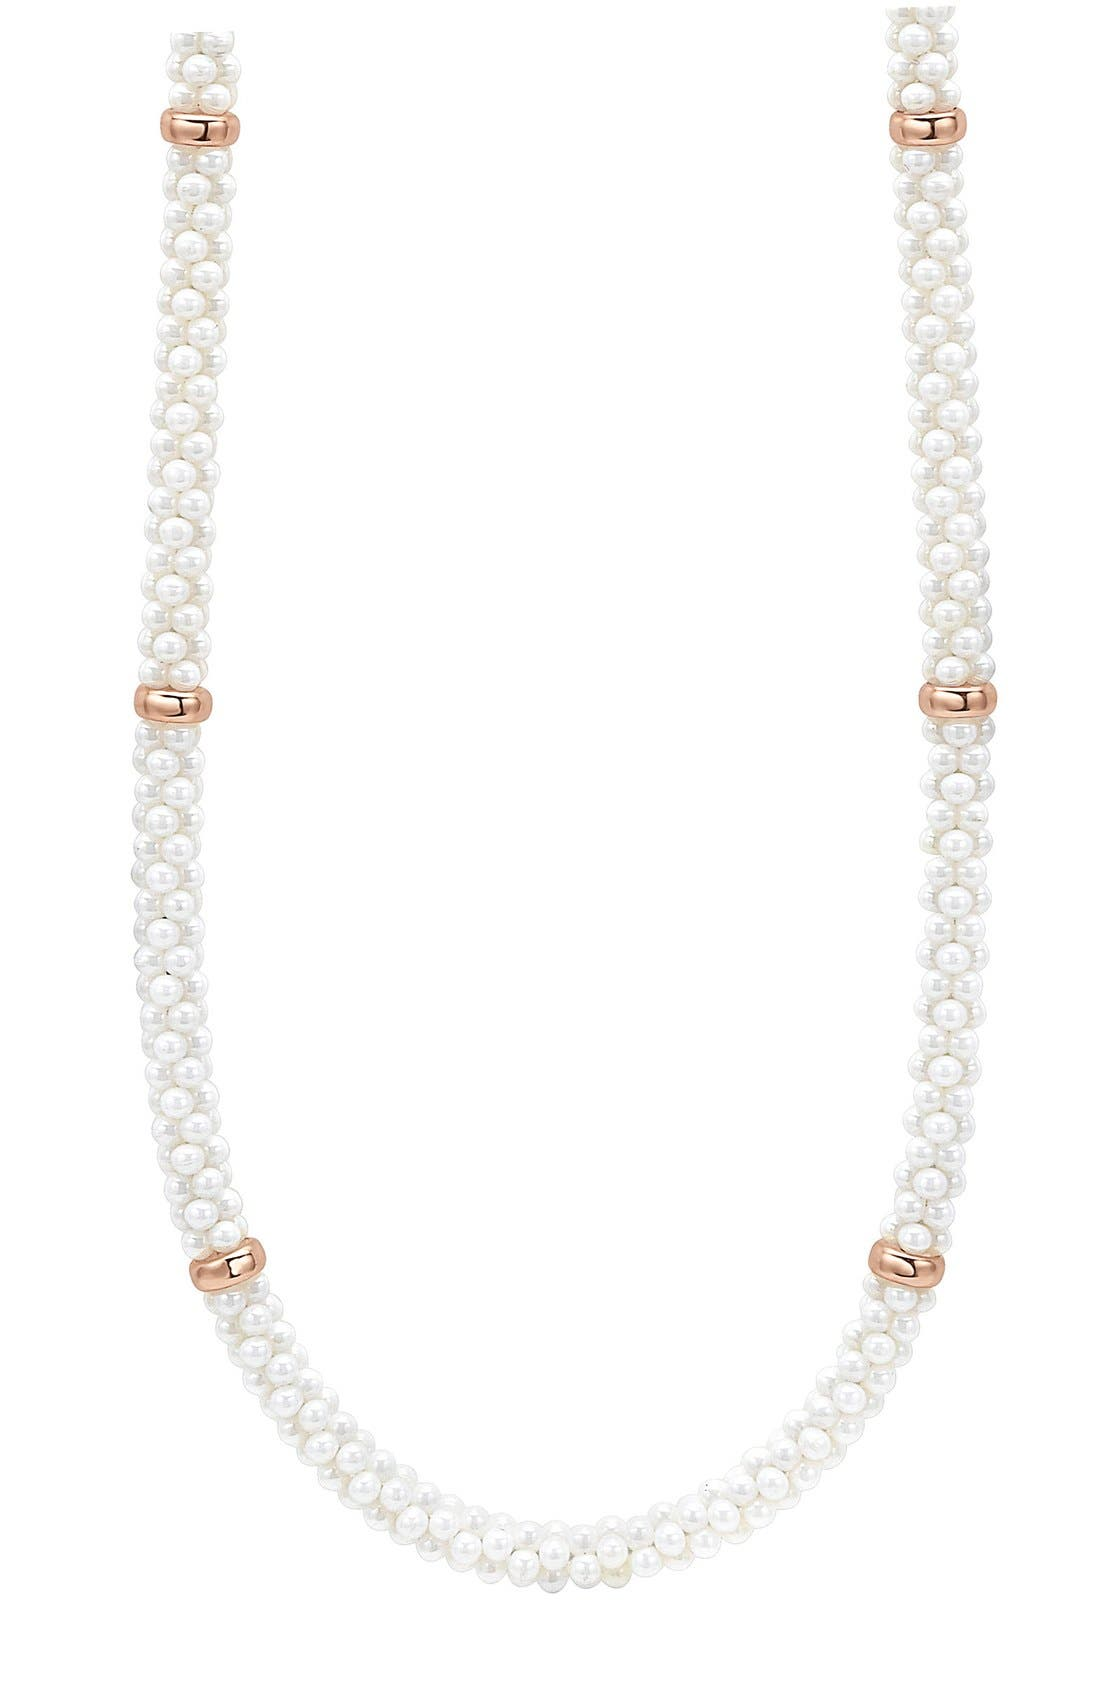 'White Caviar' 5mm Beaded Station Necklace,                             Alternate thumbnail 2, color,                             White Caviar/ Rose Gold